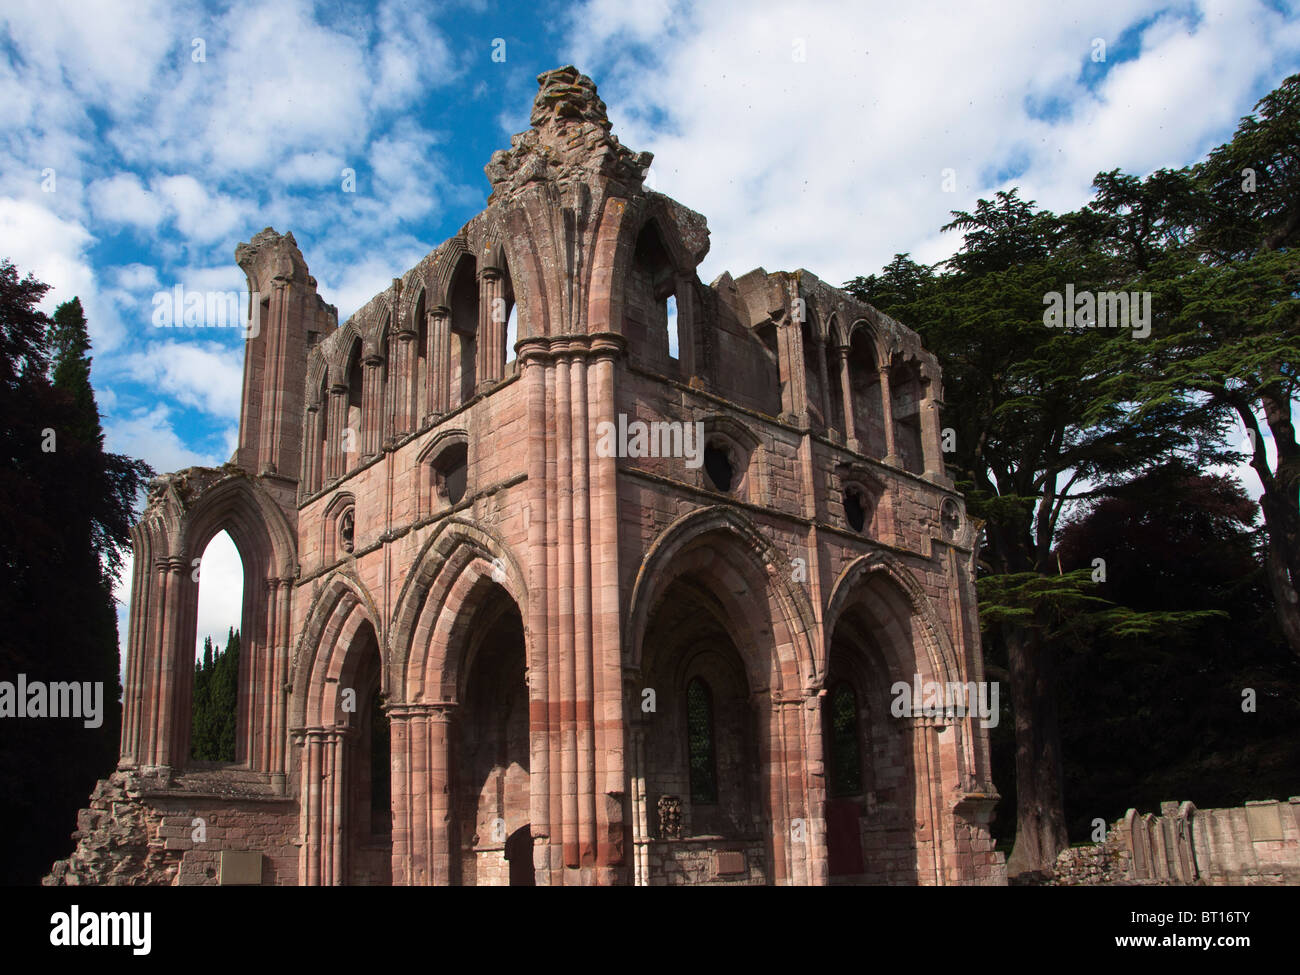 The ruined medieval architecture of Dryburgh Abbey in the Scottish borders, Dryburgh, Scotland. - Stock Image